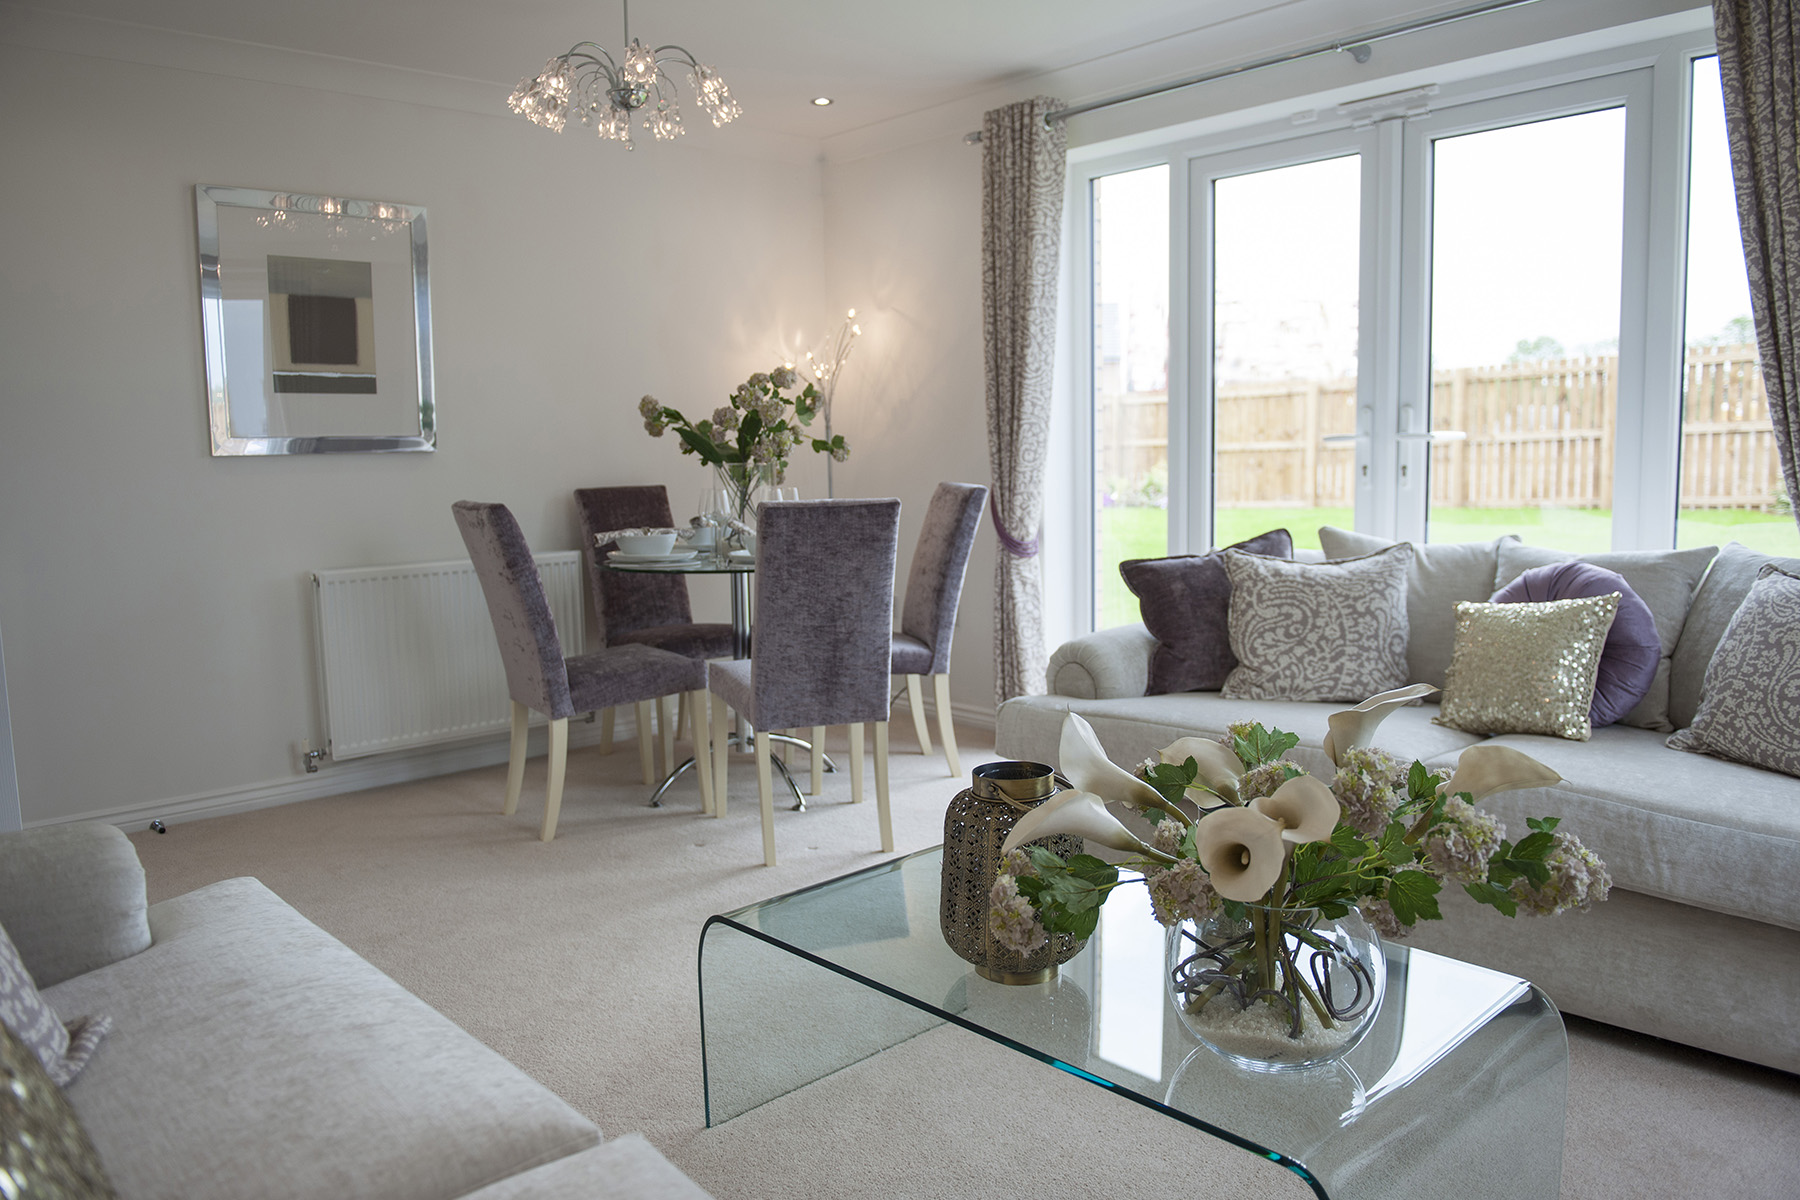 The balfour 2 plot 120 taylor wimpey for Living room kilmarnock